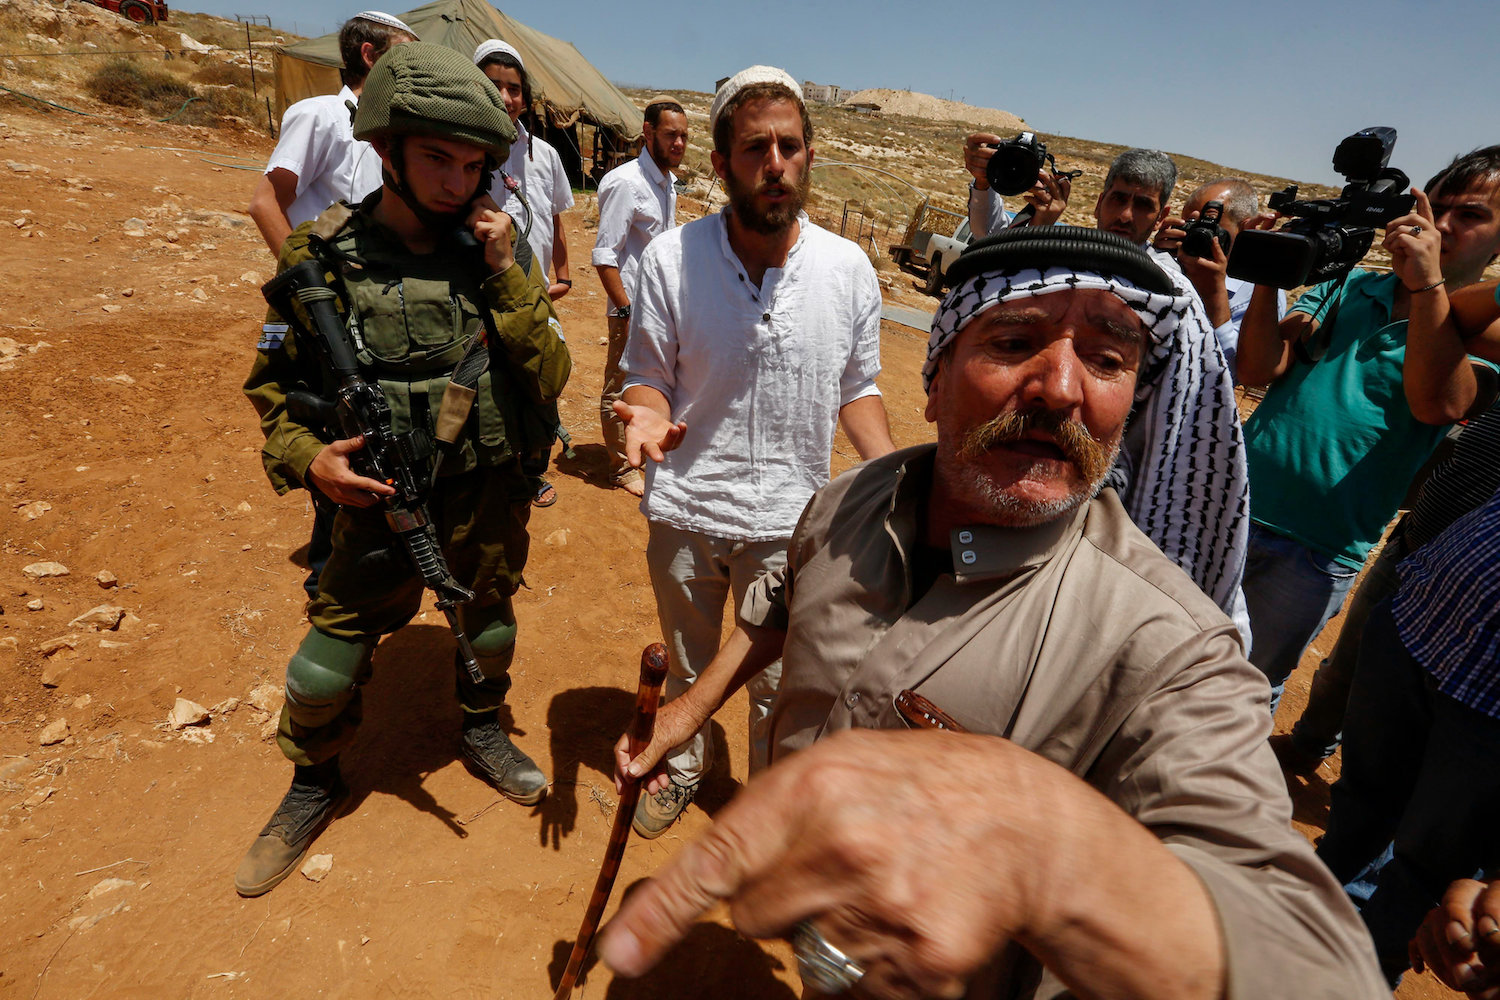 An Israeli settler argues with Palestinians during a protest against a new settler tent near the Pnei Hever settlement in the West bank village of Bani Naim on June 23, 2018. (Wisam Hashlamoun/Flash90)